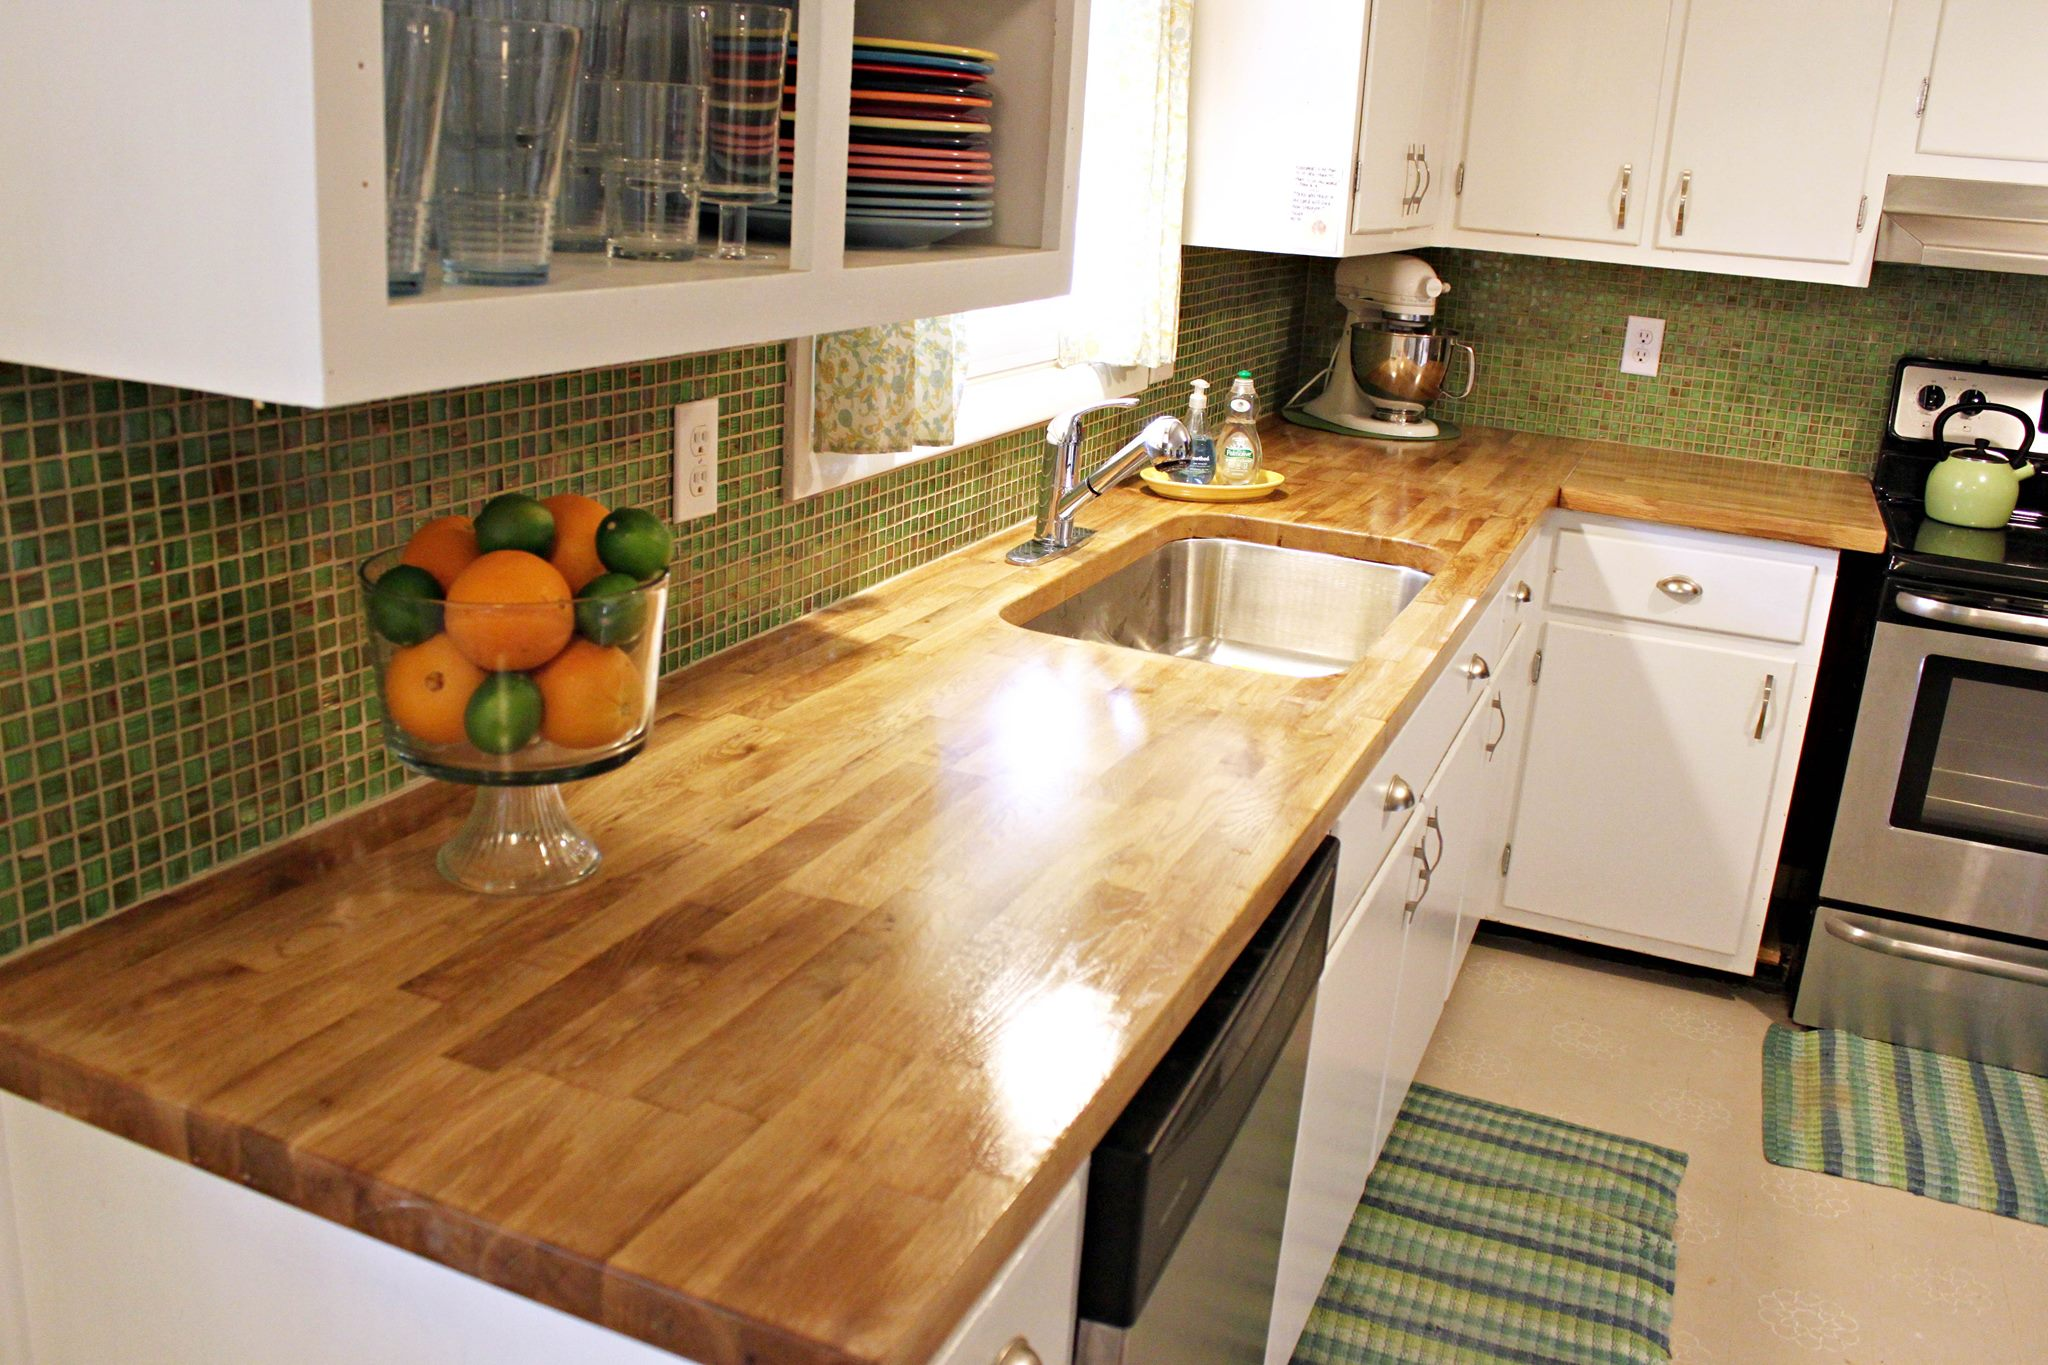 Tung Oil For Butcher Block Countertops Awesome Kitchen Ideas How Do It Info